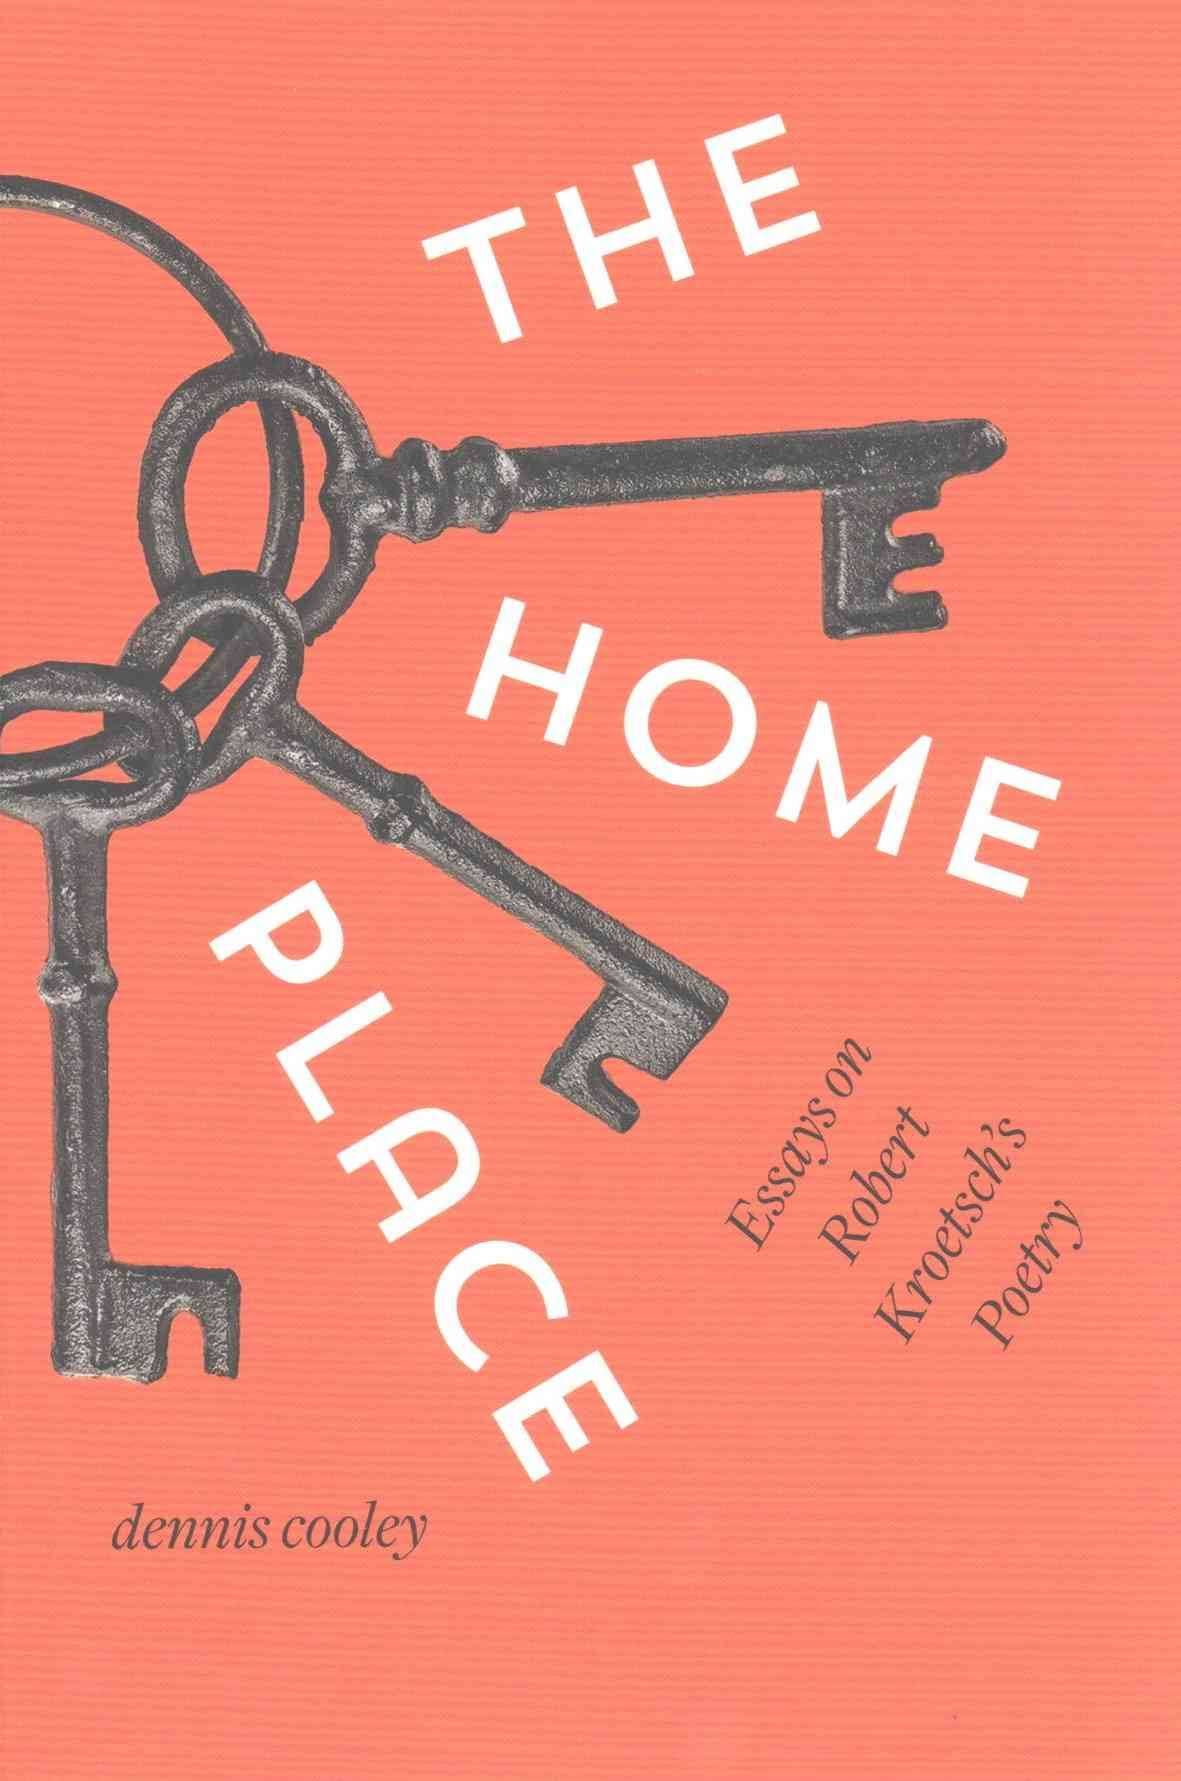 the home place essays on robert kroetsch s poetry prairie fire the home place essays on robert kroetsch s poetry